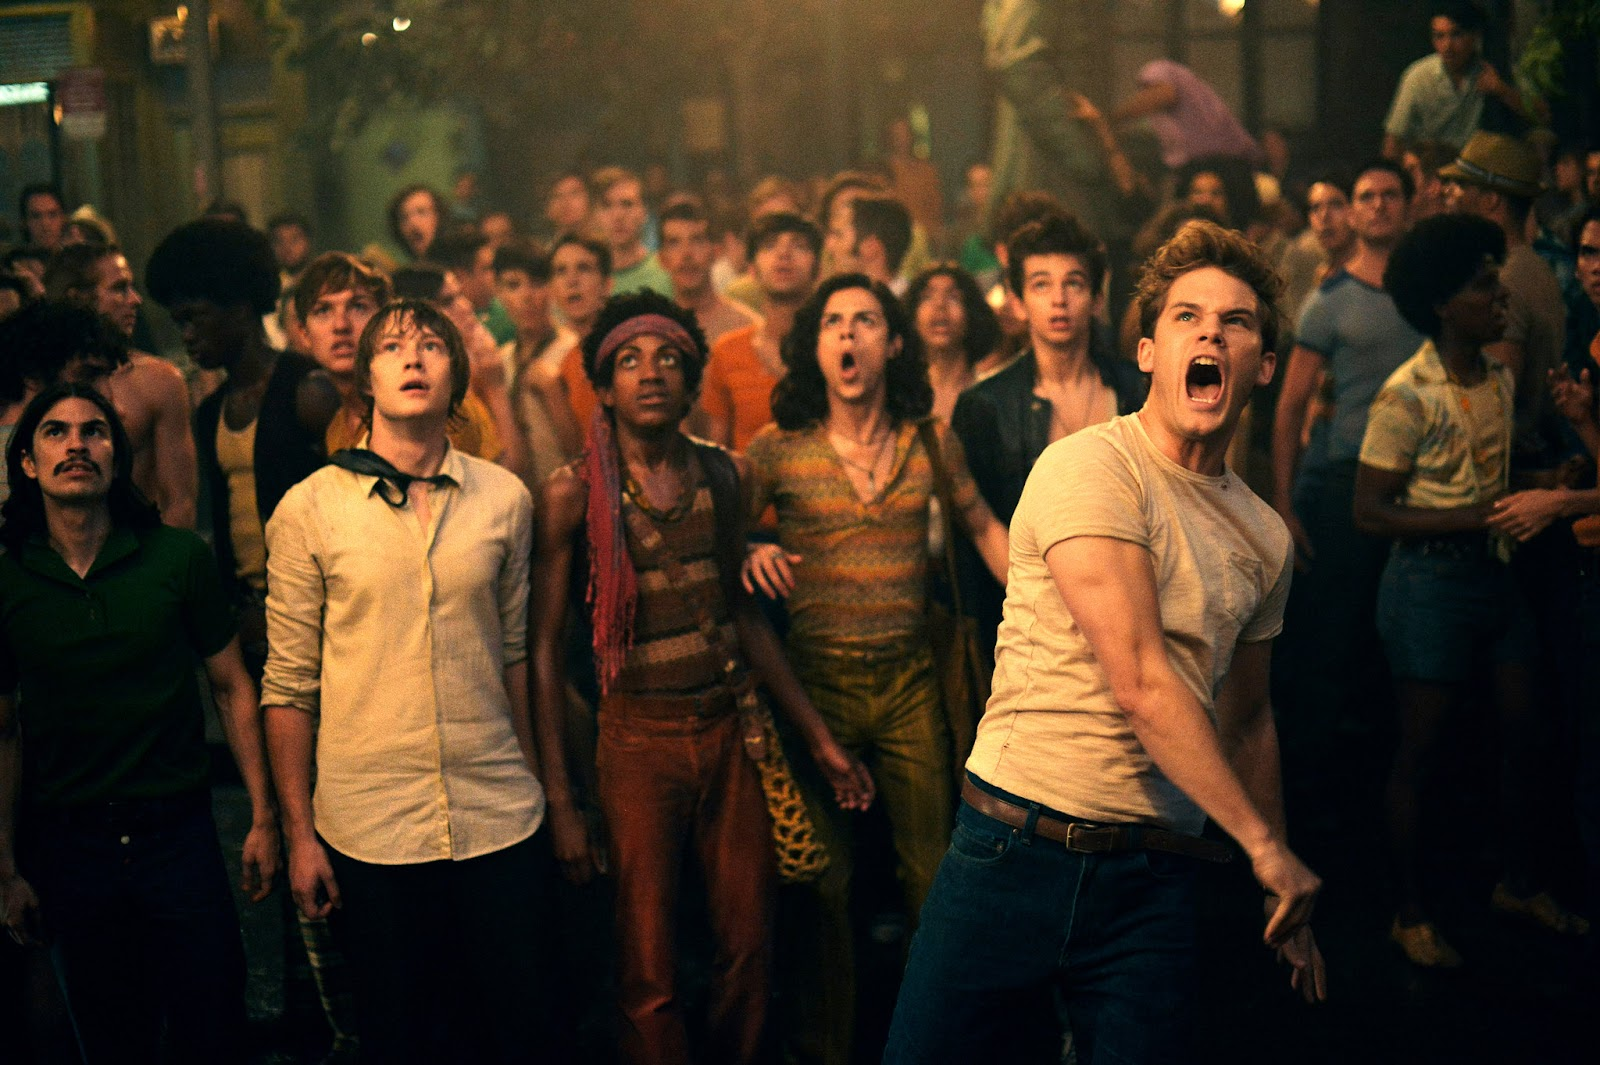 Still from Stonewall (2015). A crowd of young gay men stand in a dark street, looking up into the sky as the man standing furthest forward, Danny, throws something in a rage.